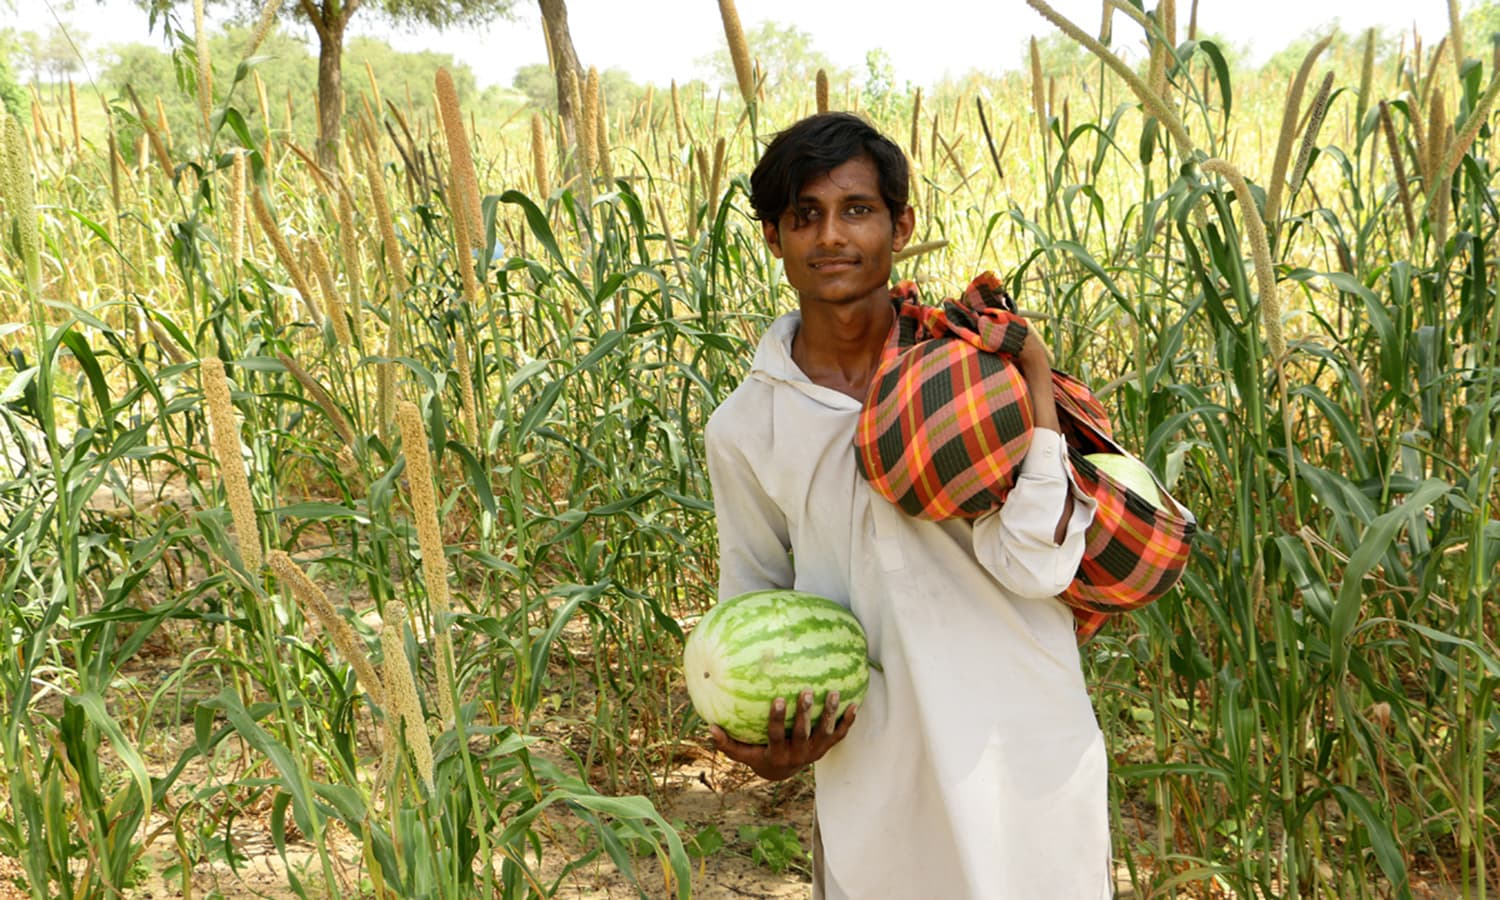 Watermelons are one of several crops grown in the desert.